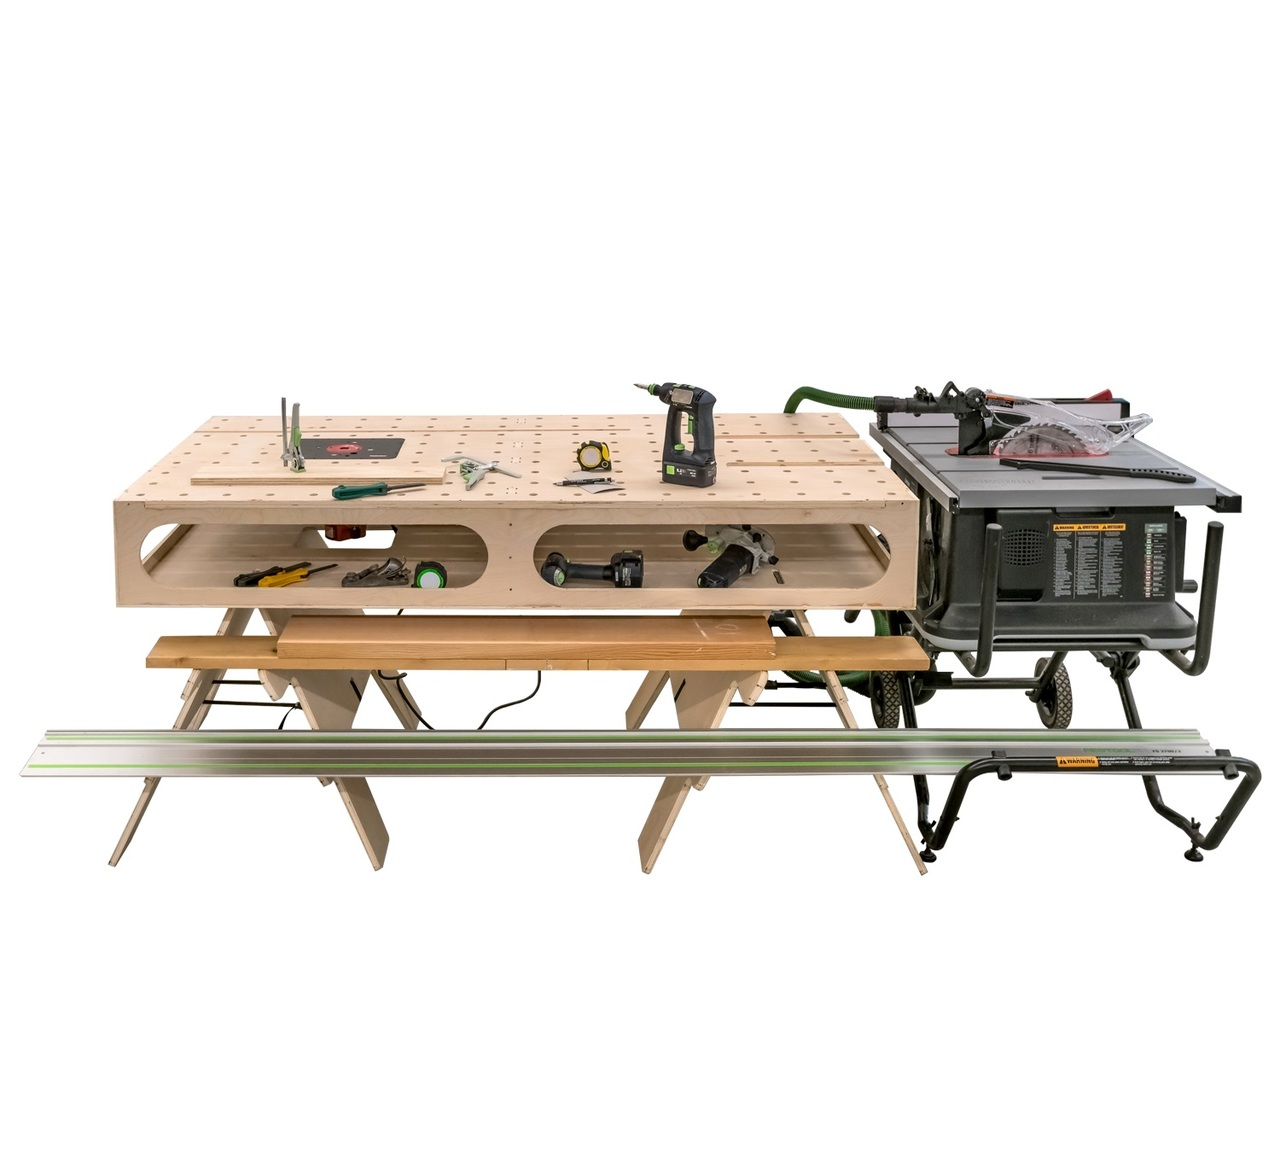 Paulk Workbench Plans An Innovative Do Everything Workbench Built